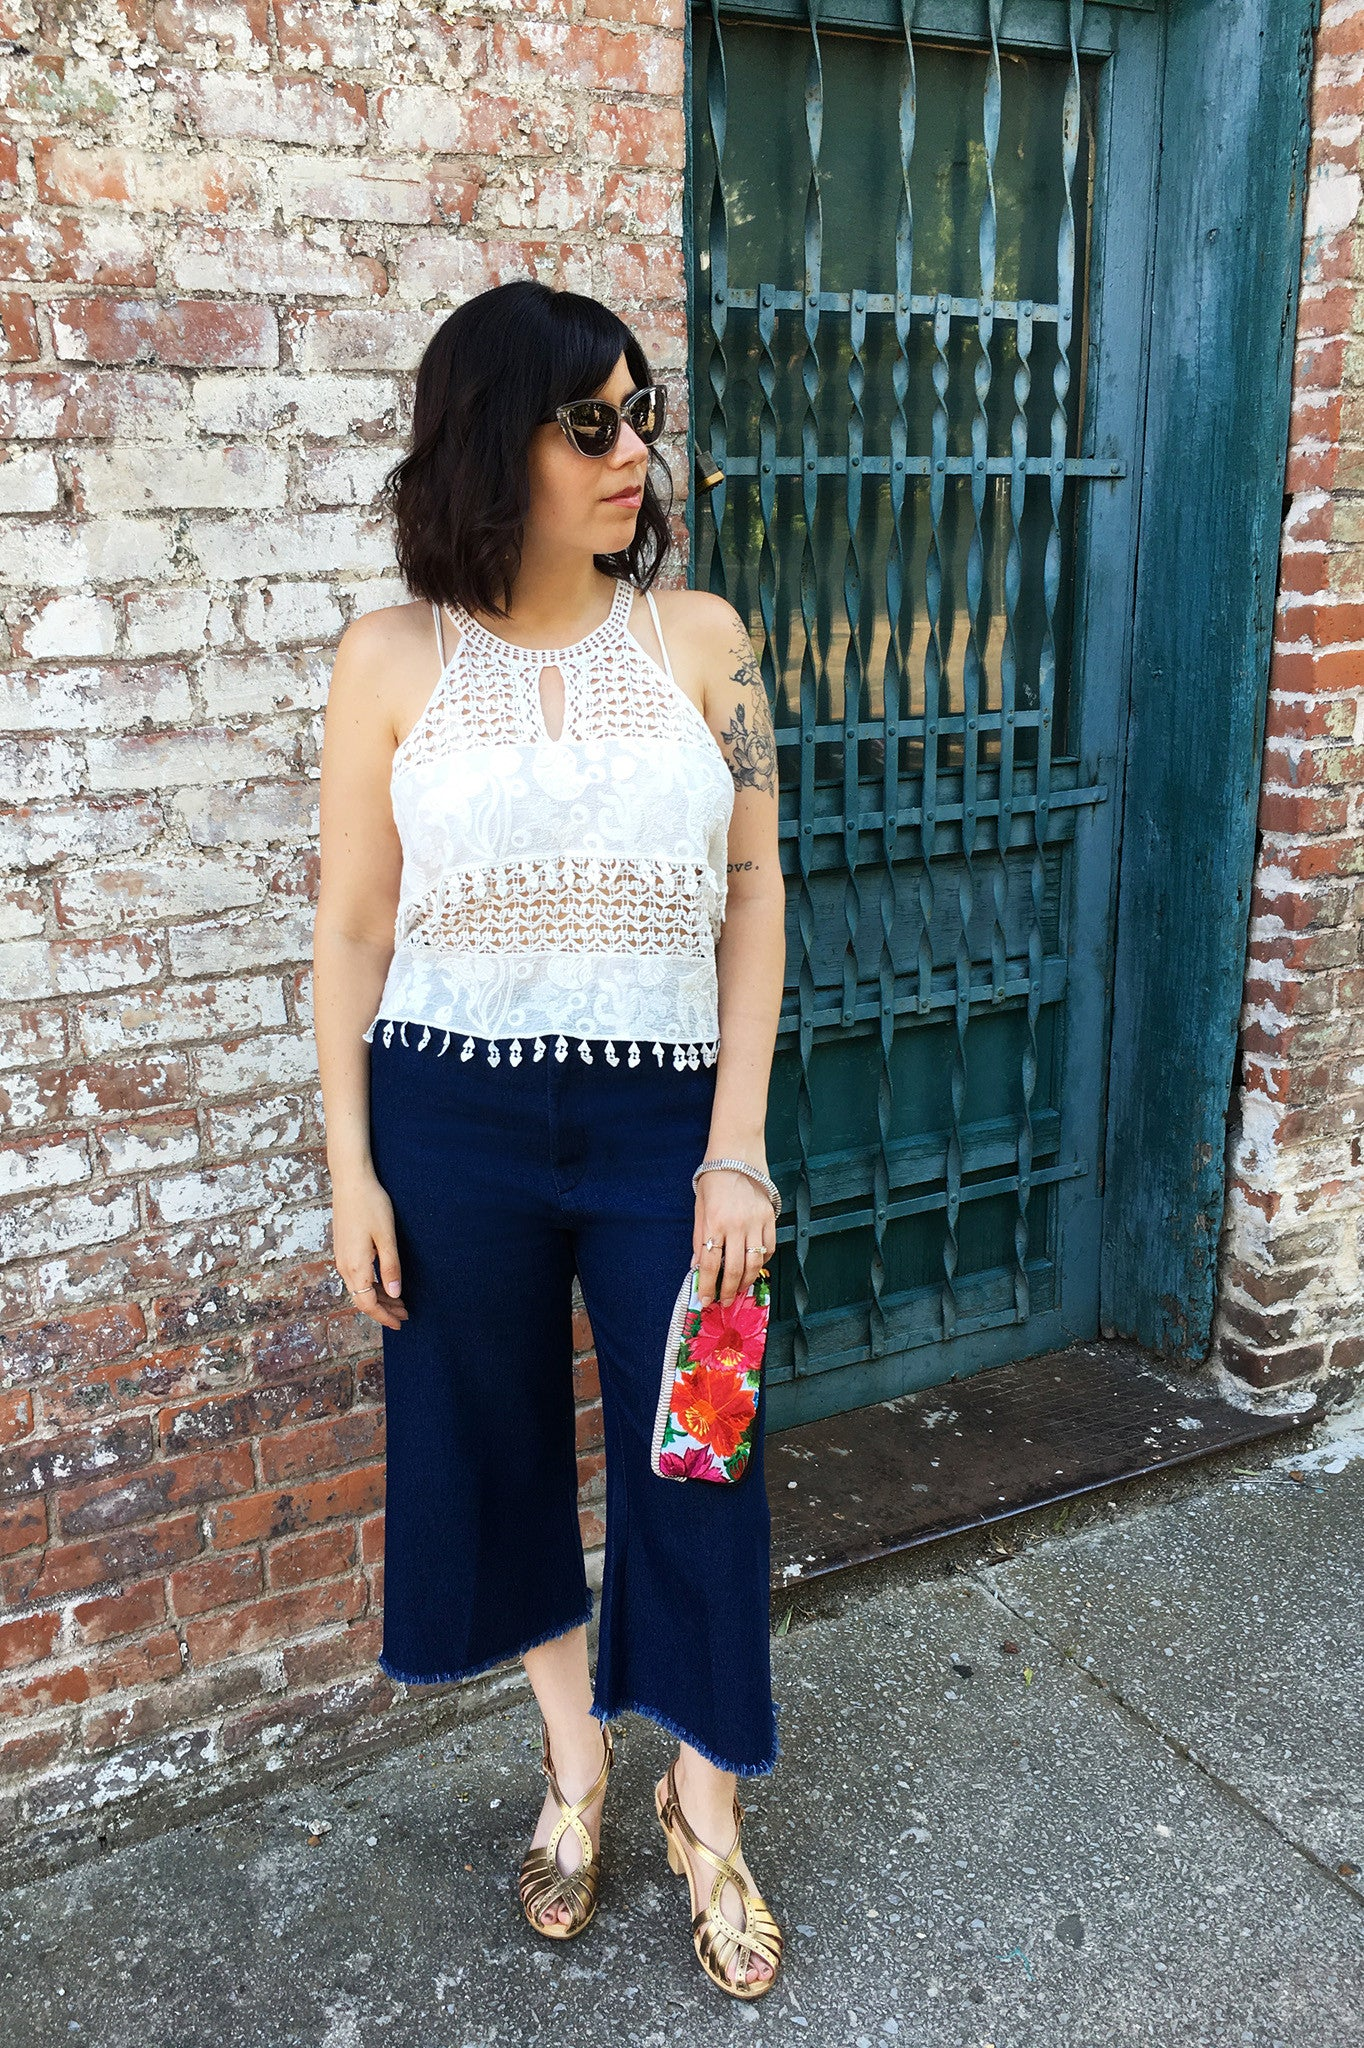 ShopMucho owner style an outfit for a summer evening out downtown in crochet crop top and crop denim frayed denim pants